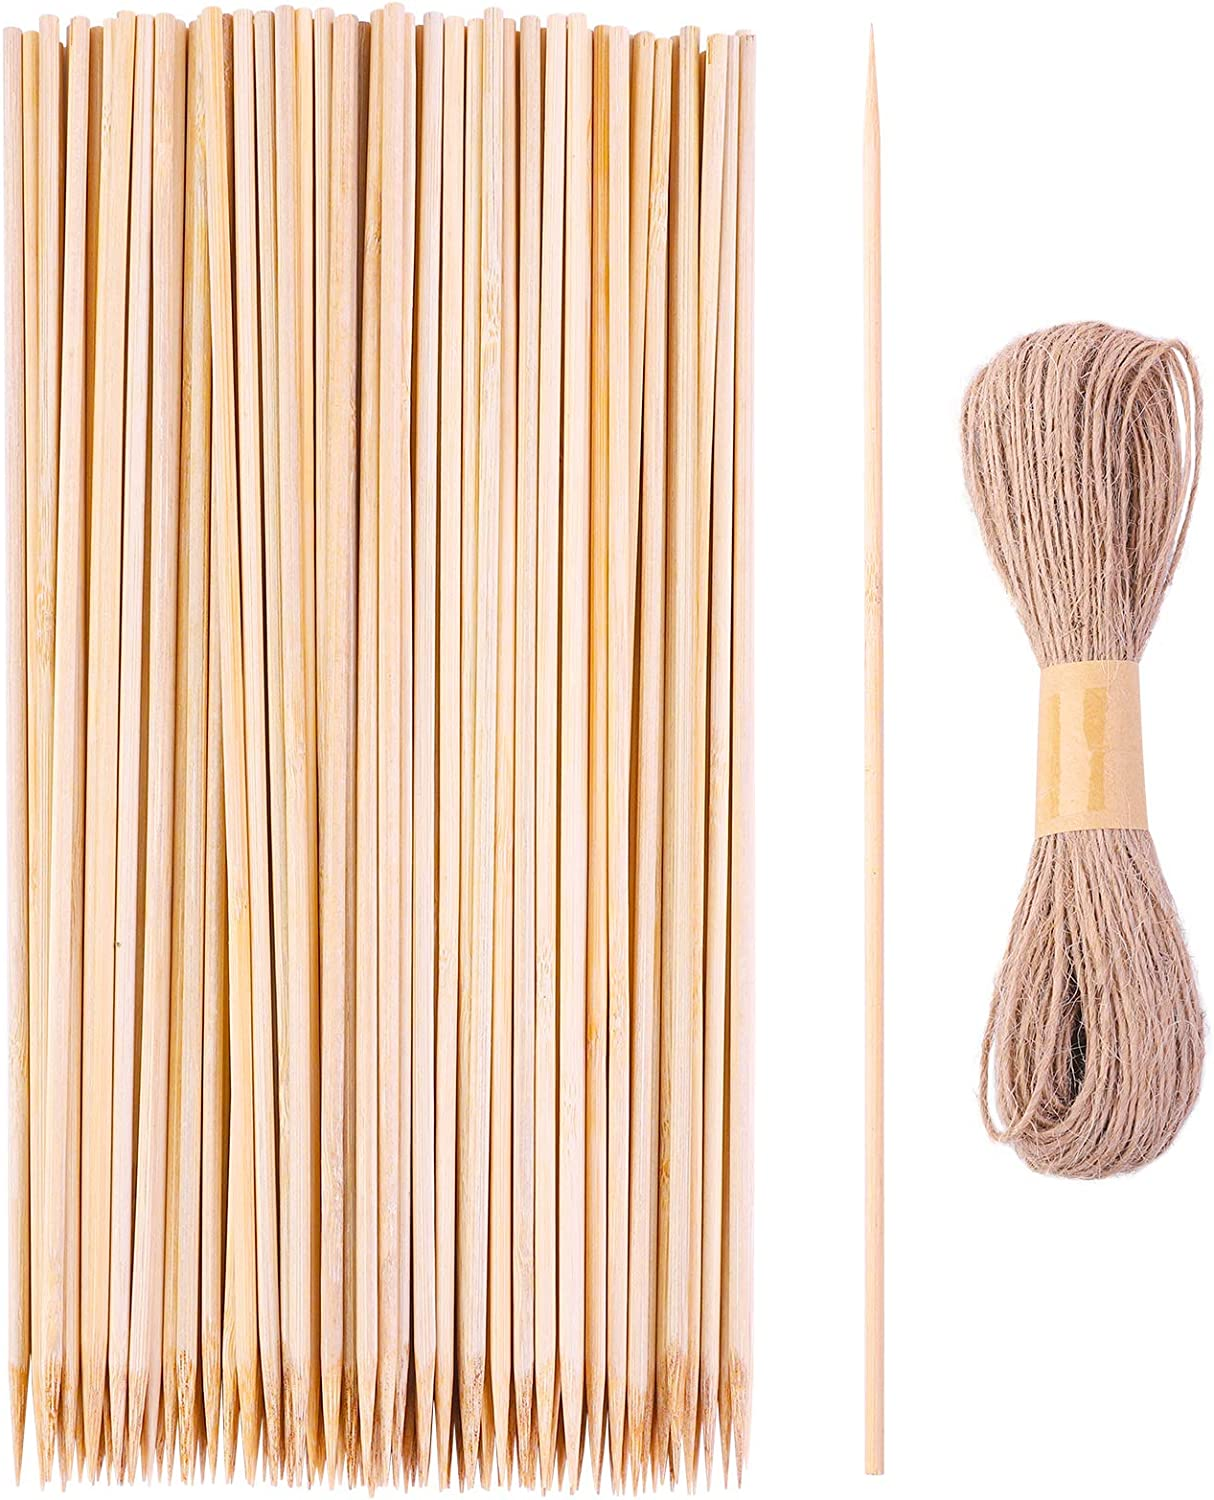 ELCOHO 120 Pieces 16 inches Bamboo Sticks Garden Plant Support Stakes Wood Plant Stakes Wooden Sign Sticks with Jute Twine for Plants, Flower, Garden, Natural